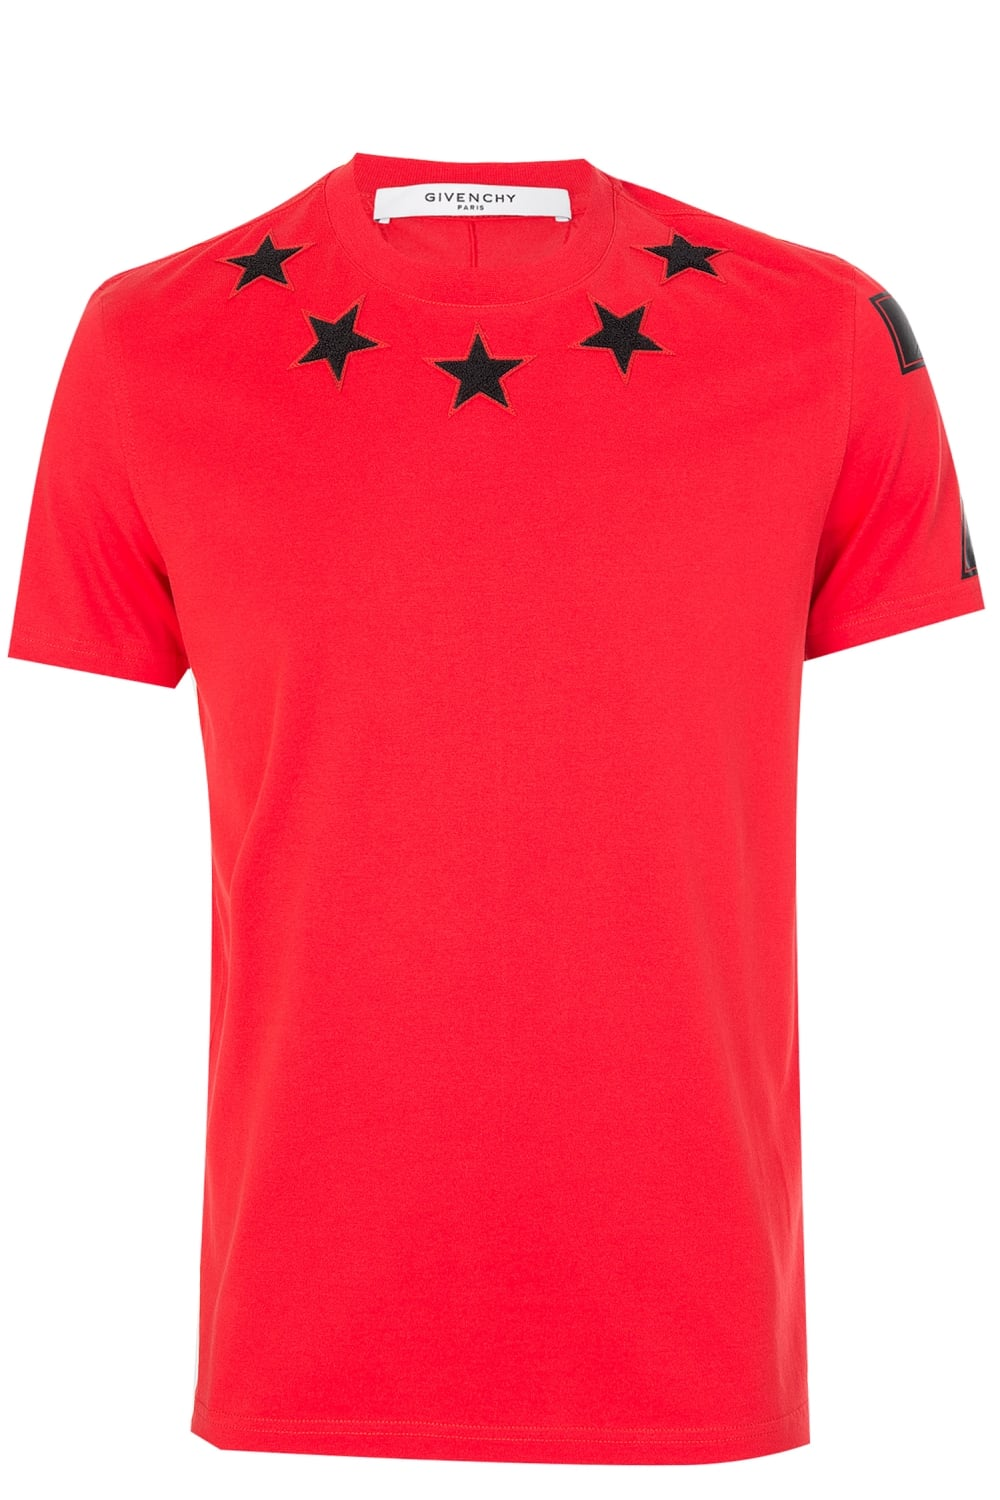 Givenchy Stars Neckline T Shirt Red